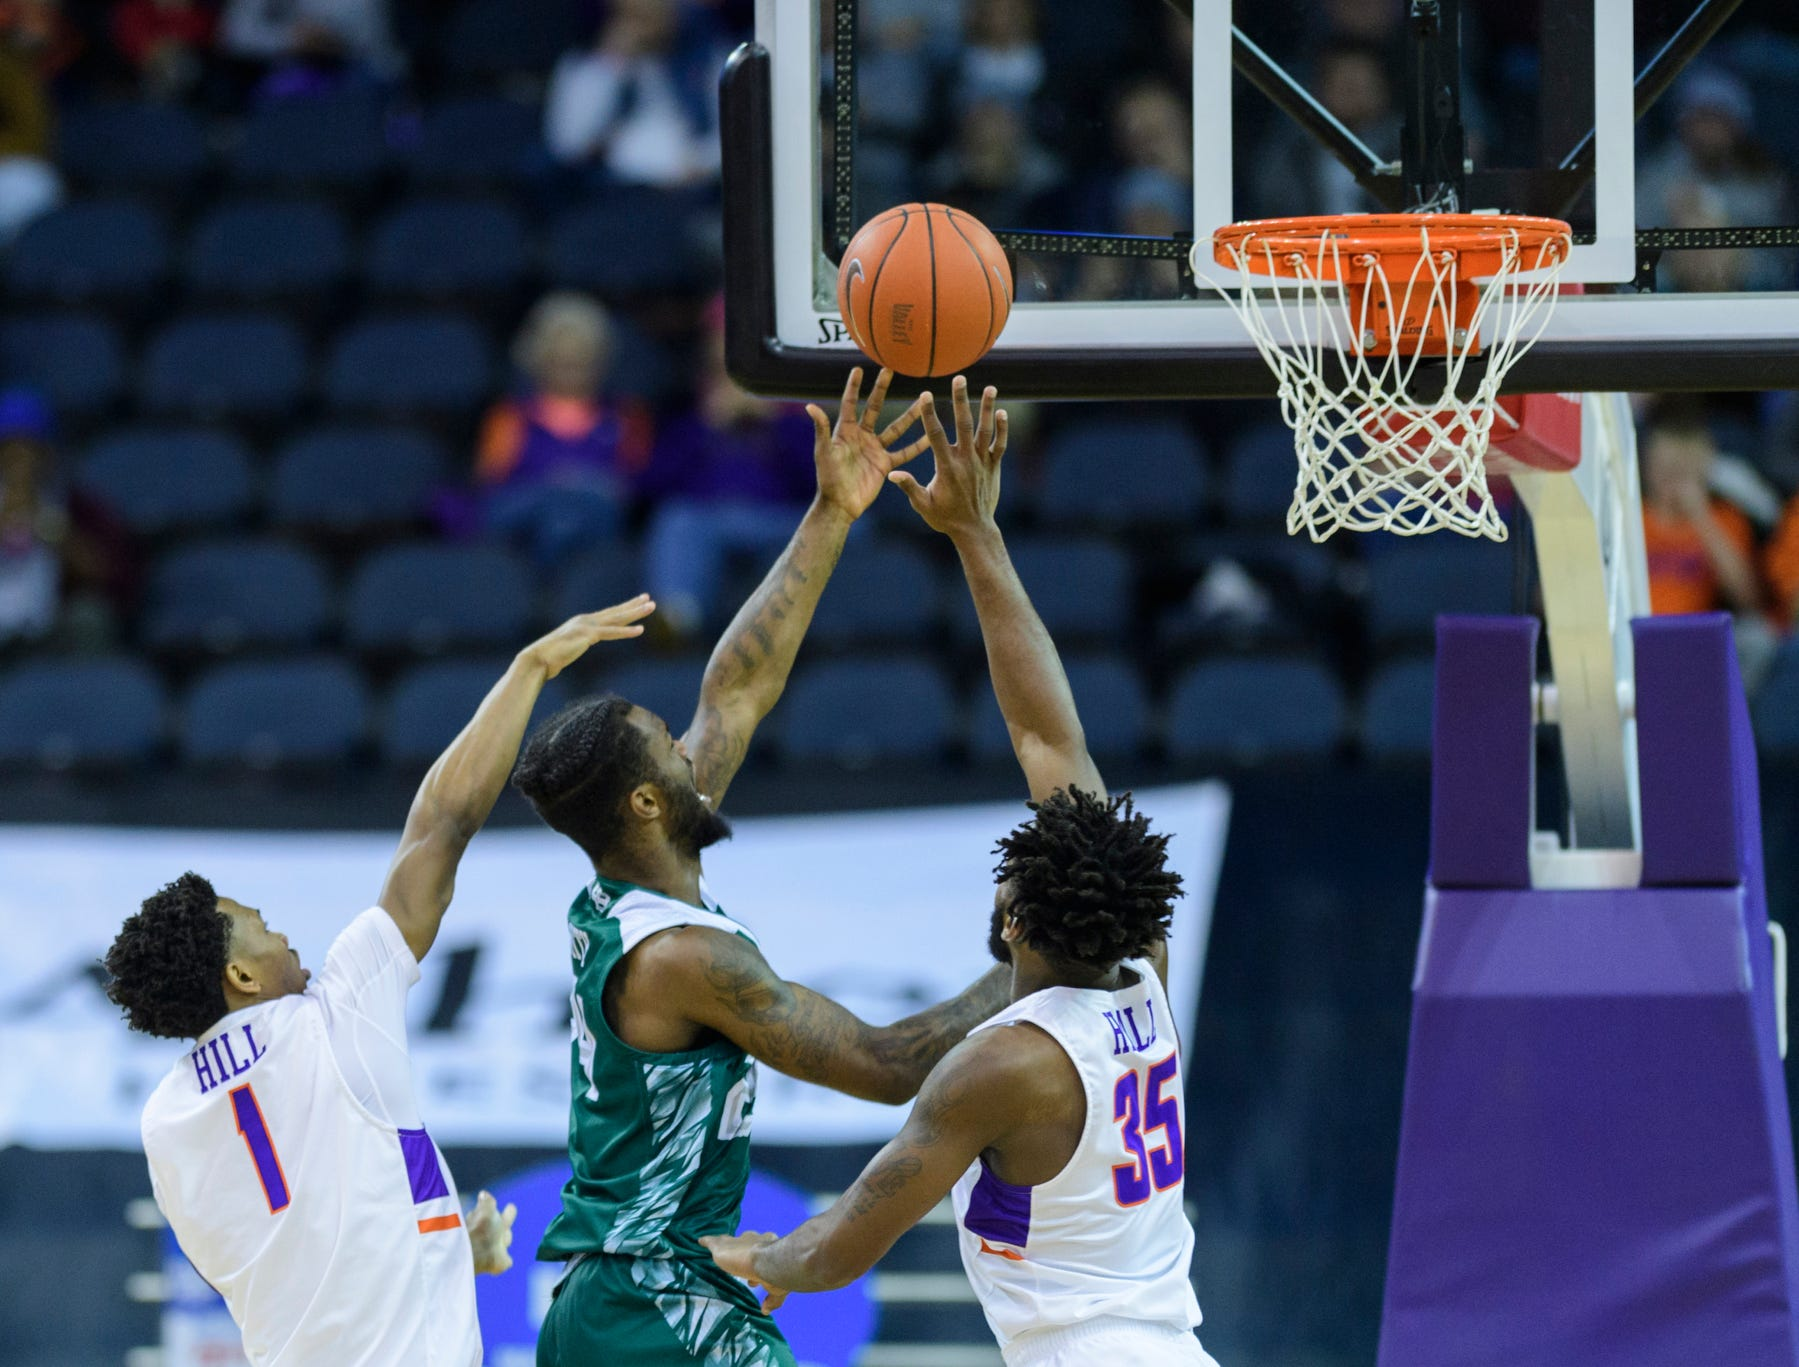 University of Evansville's Marty Hill (1) and University of Evansville's John Hall (35) block Green Bay's Jevon Smith (24) from the net during the first half at the Ford Center in Evansville, Ind., Saturday, Dec. 22, 2018. The Purple Aces defeated the Phoenix 80-75 in their last non-conference game of the season.